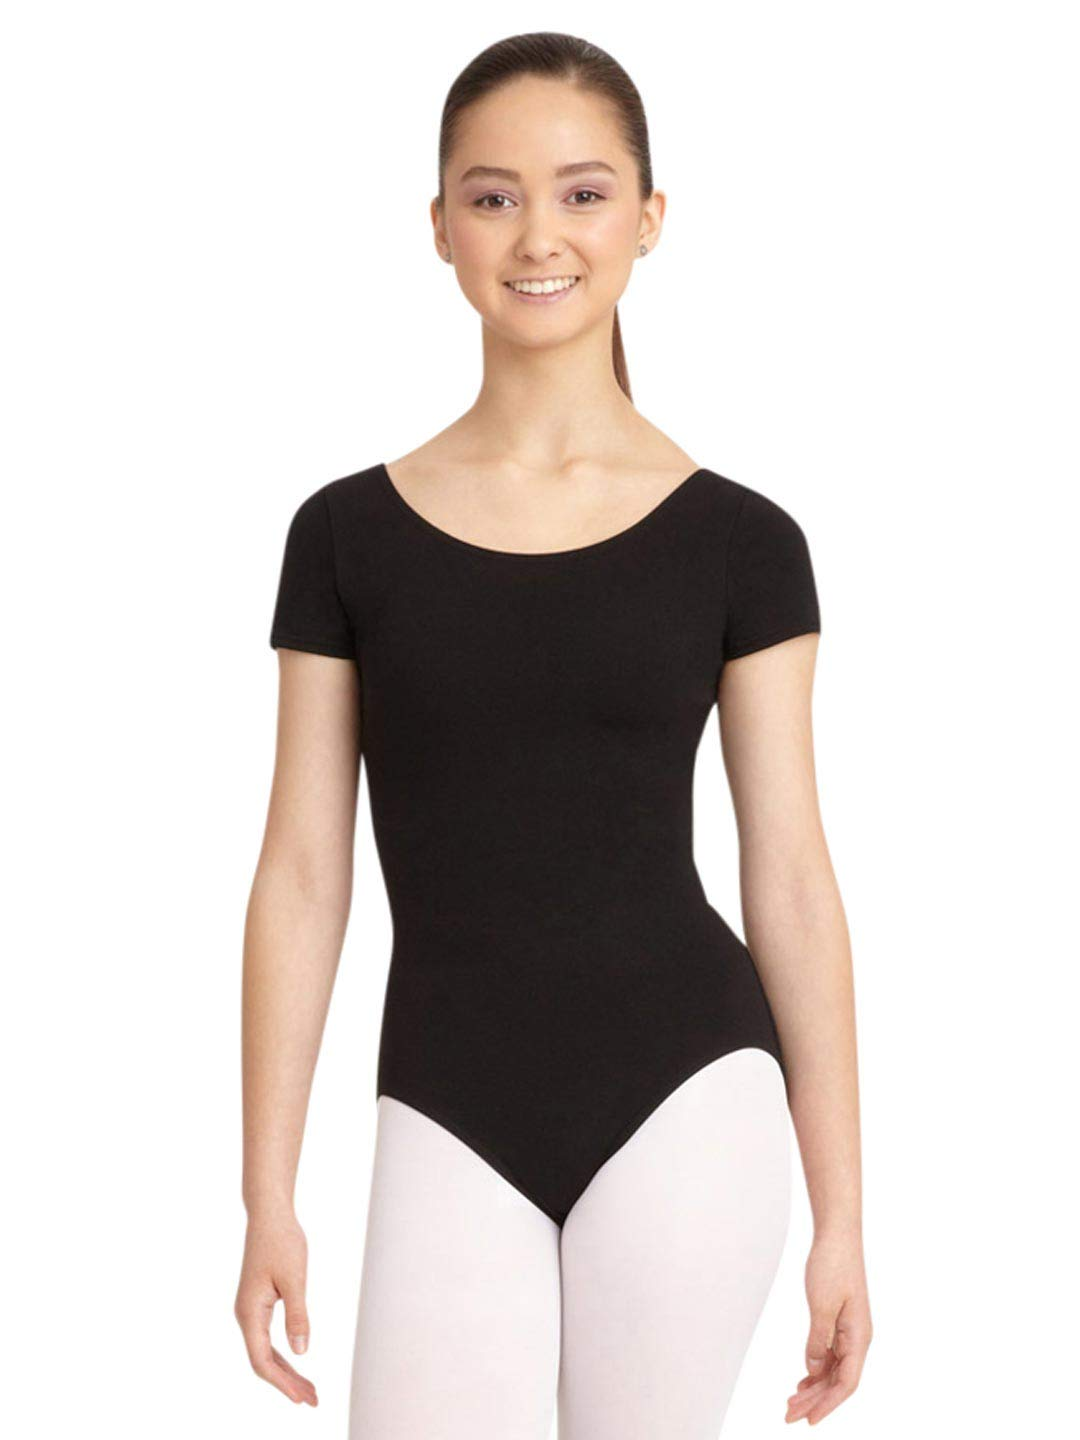 Capezio Women's Classic Short Sleeve Leotard,Black,X-Large